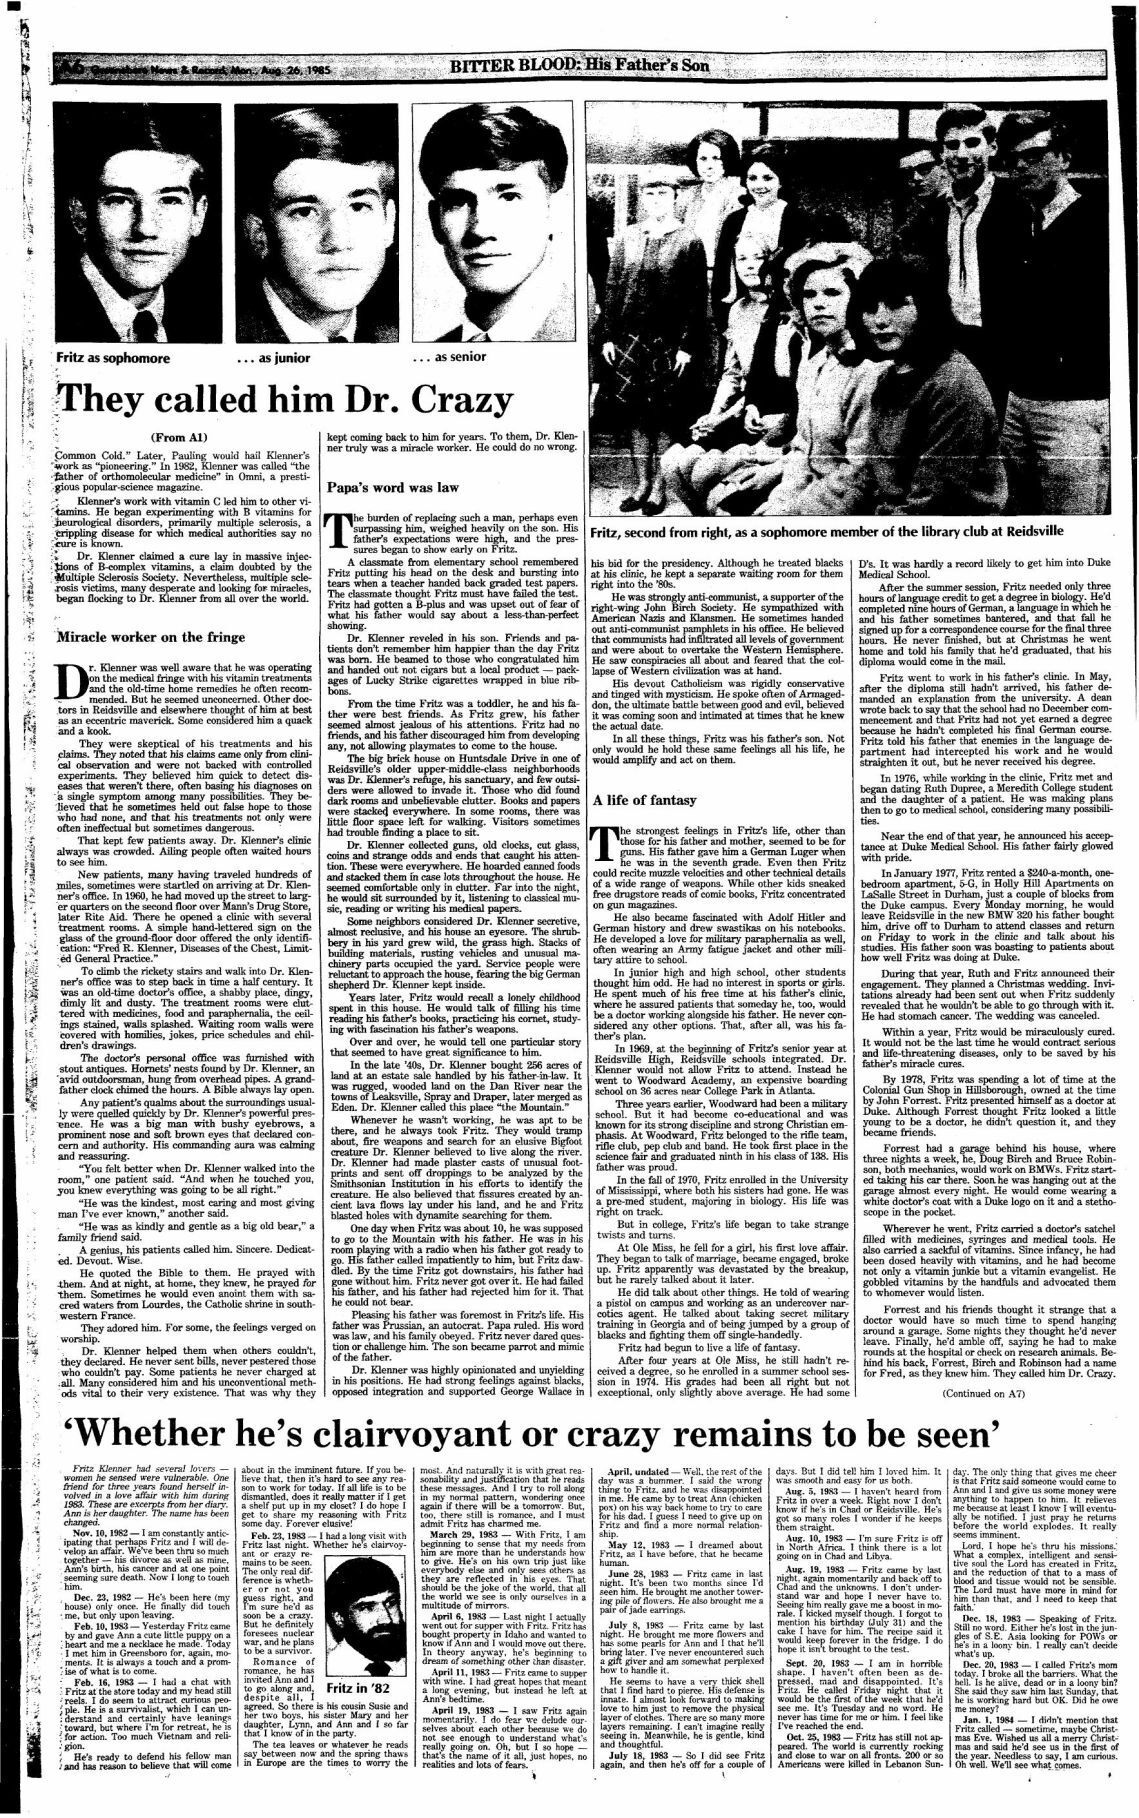 Bitter Blood: They called him Dr. Crazy